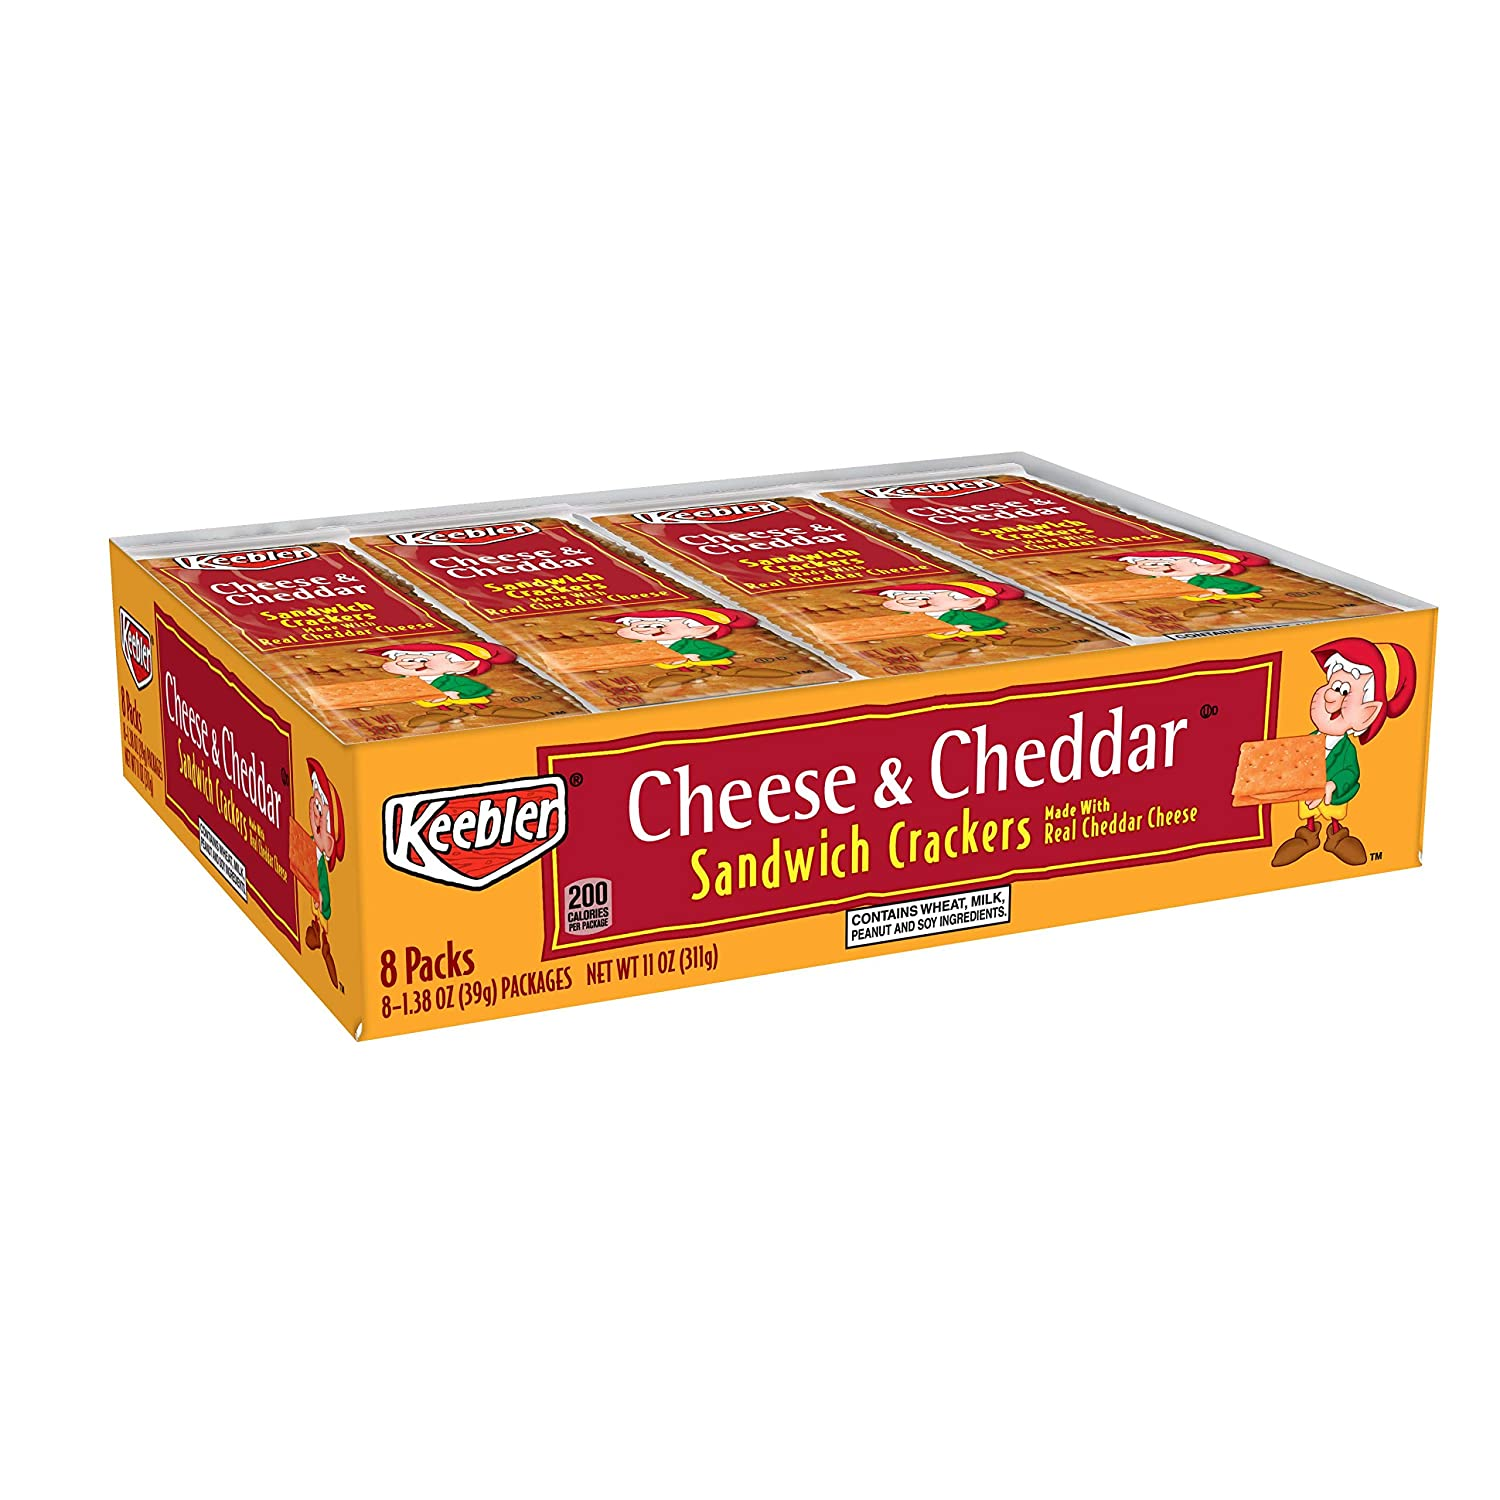 Keebler Cheese and Cheddar Sandwich Crackers, Single Serve, 1.38 oz Packages, 8 Count(Pack of 6) Kellogg Company